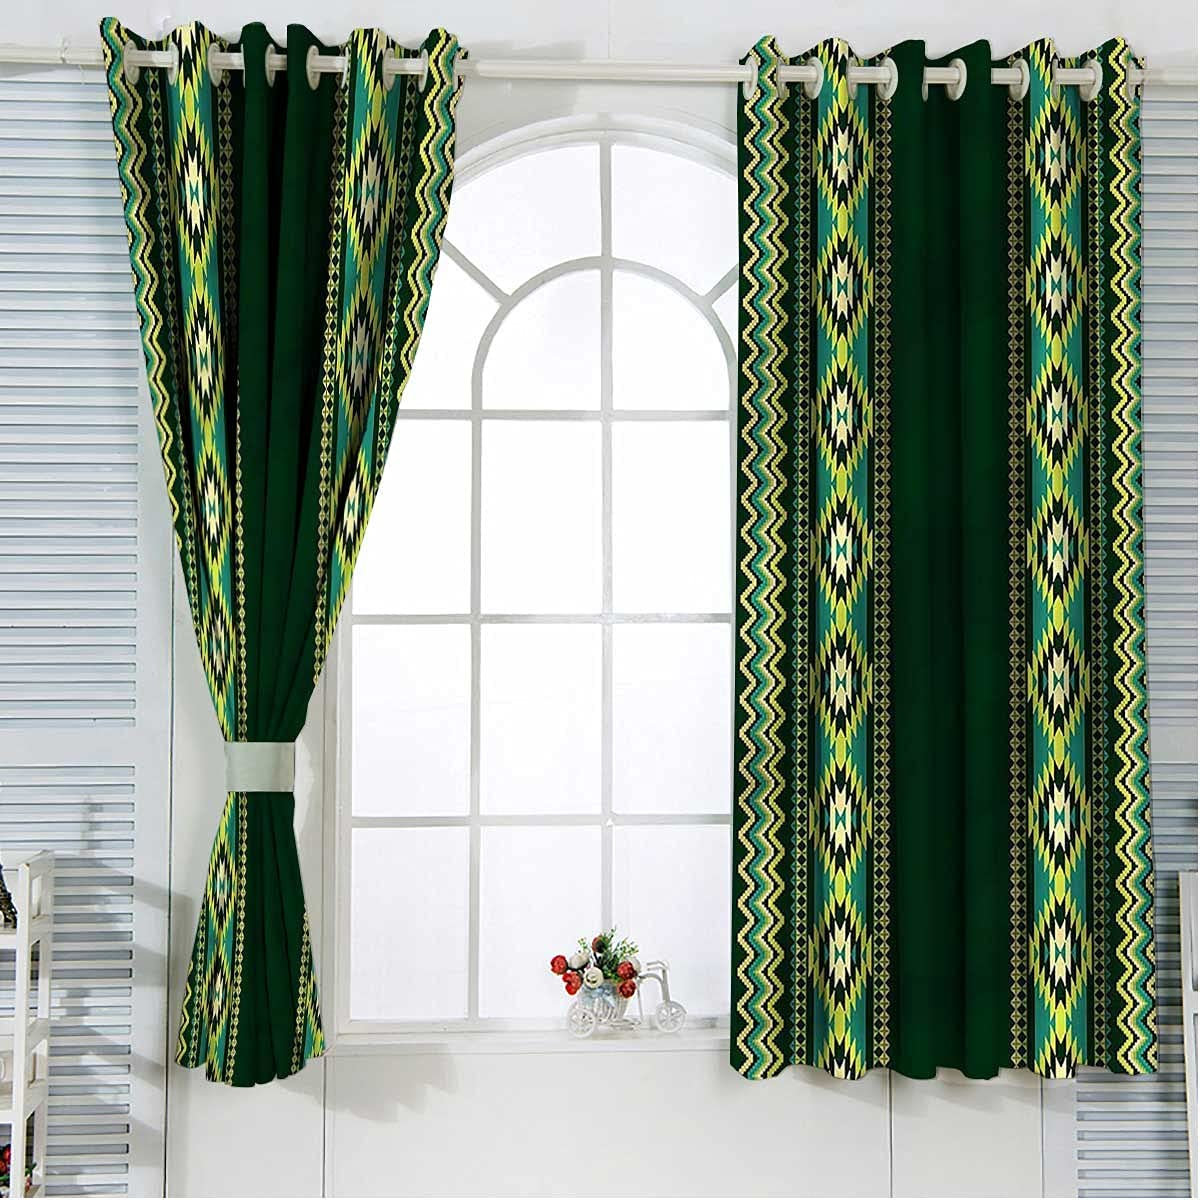 Aztec Sun Blocking Curtains 63 Special price for a limited time Inch Borders Length Vertical in G Sale item